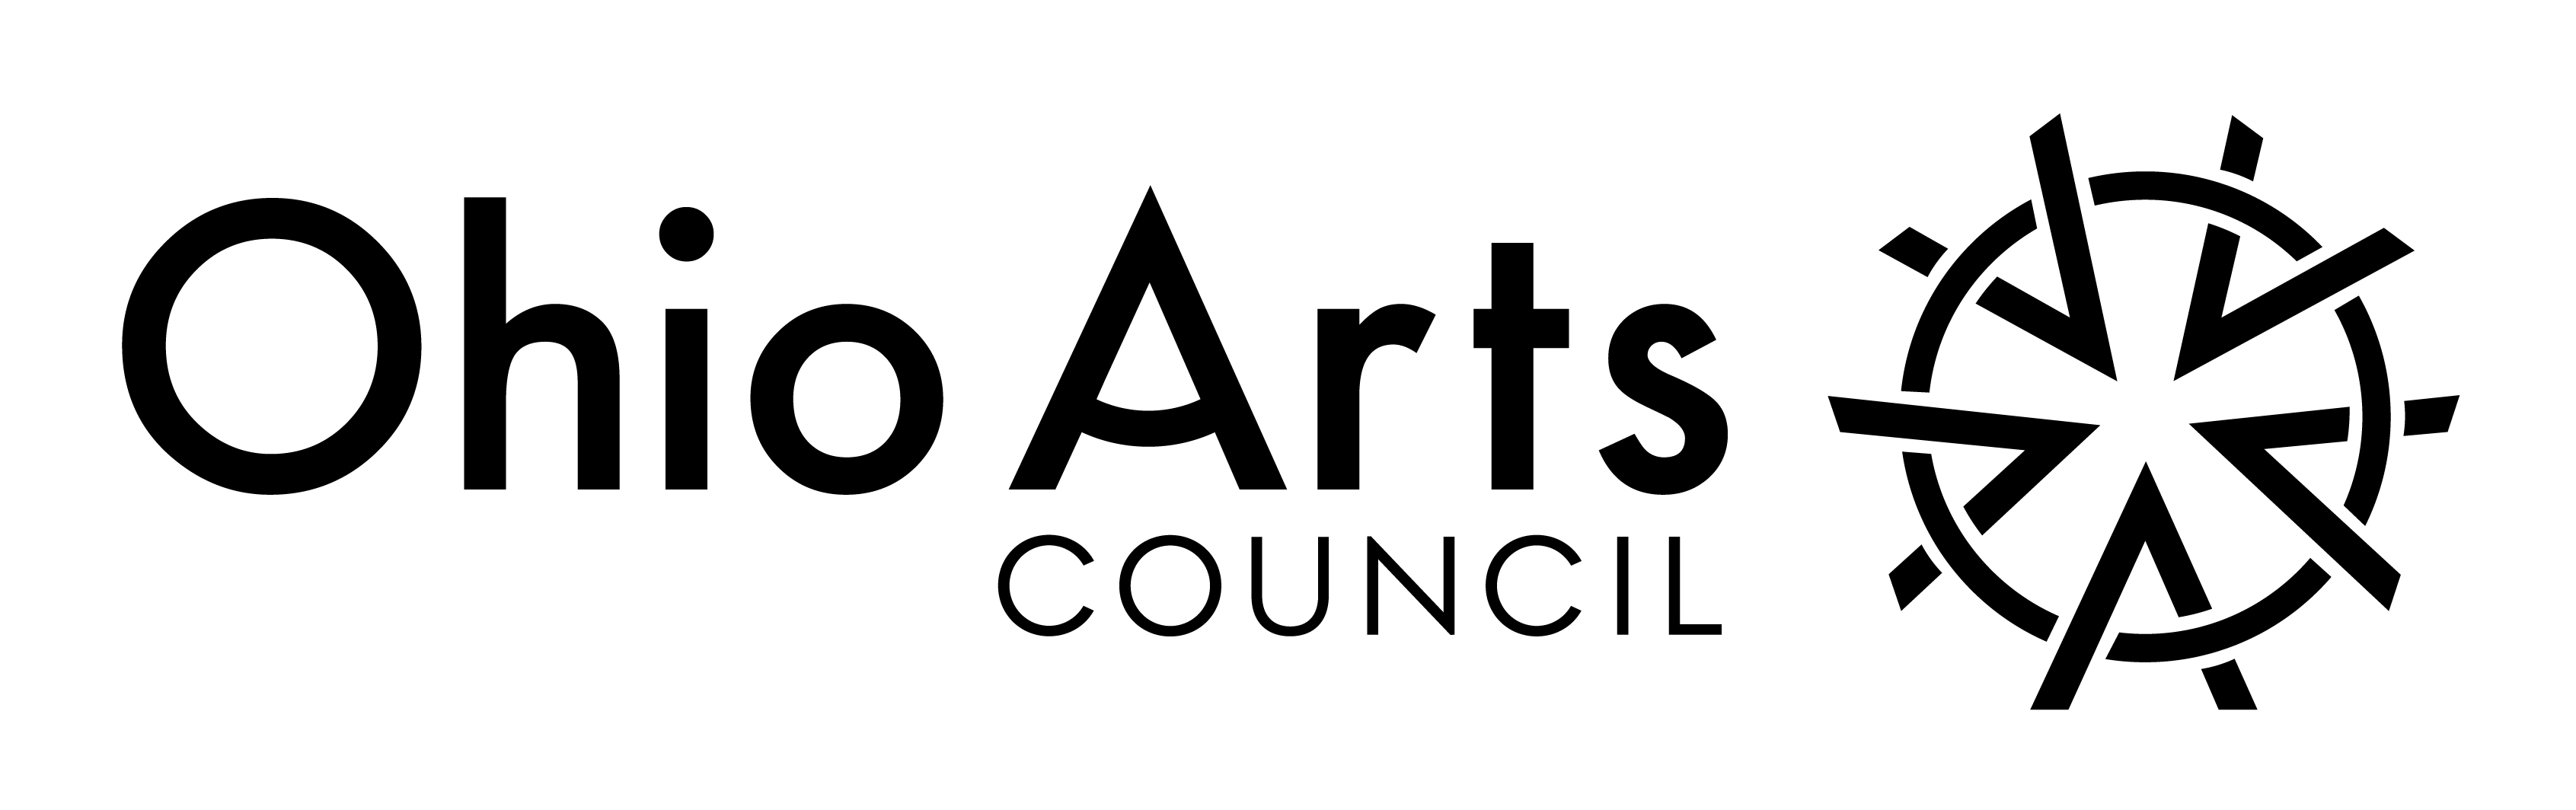 Ohio Arts Council logo (black and white)